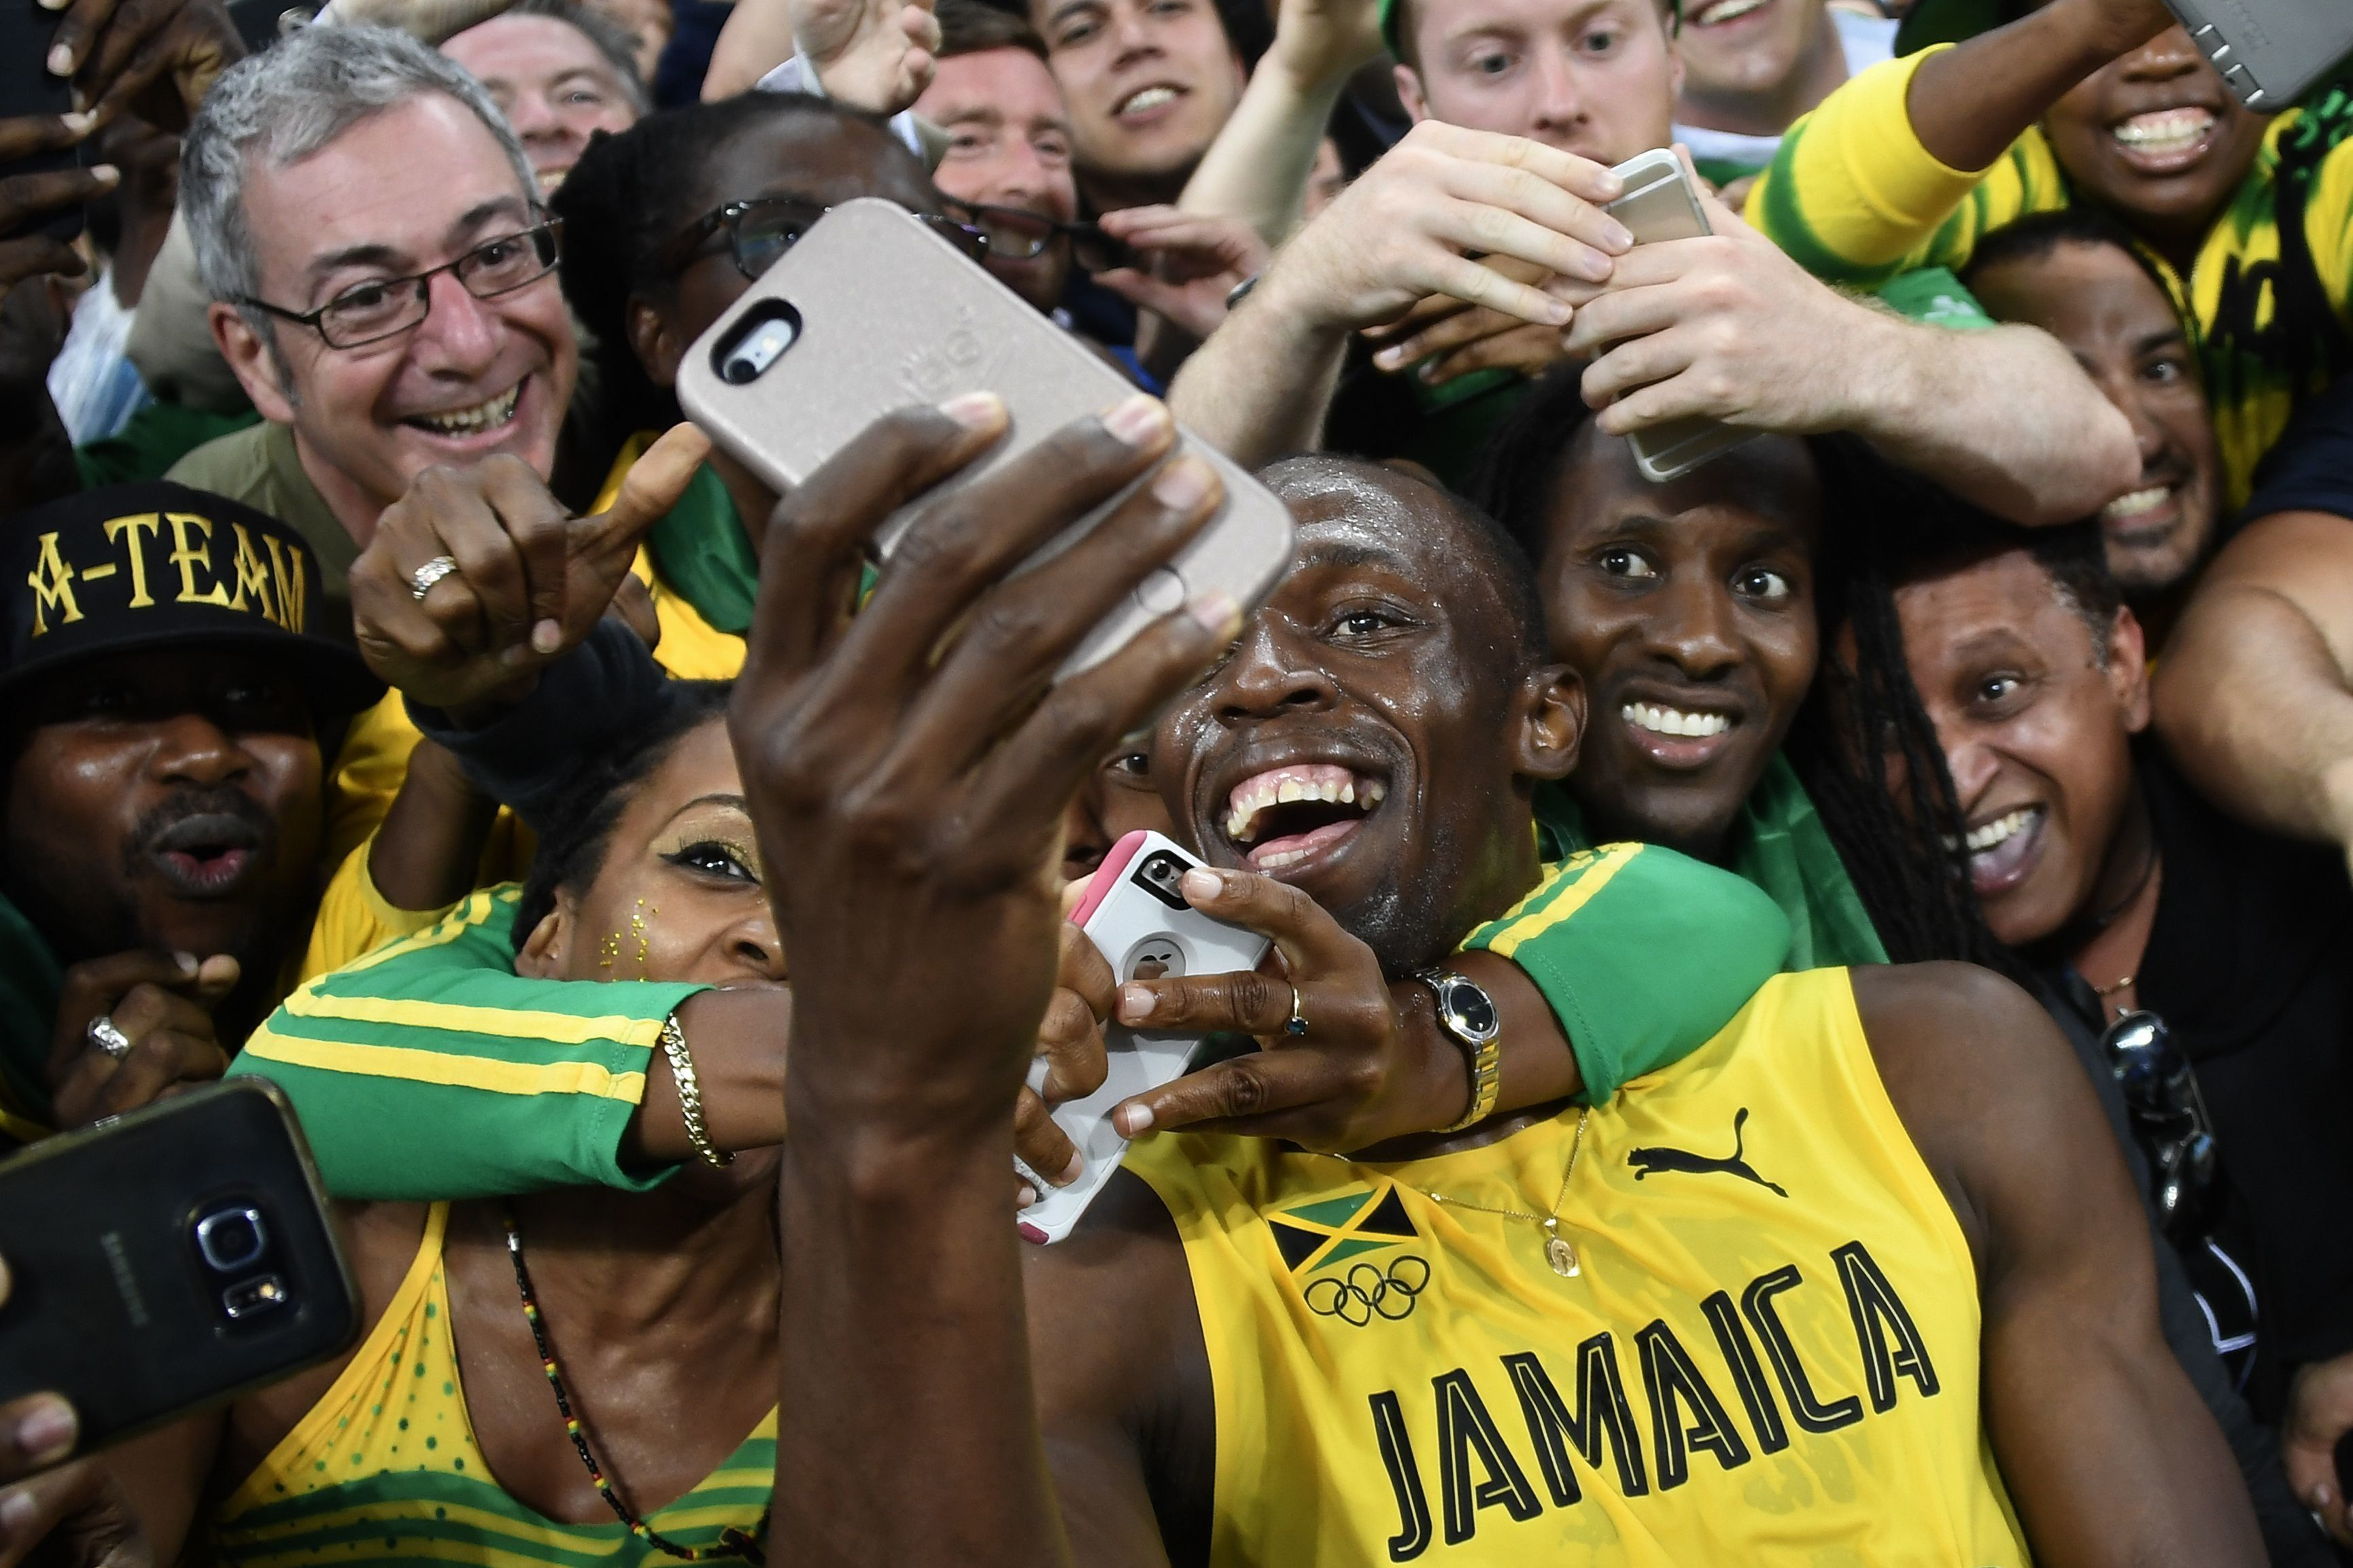 Jamaica's Usain Bolt takes selfie photos as he celebrates with fans after winning the Men's 200m Final during the athletics event at the Rio 2016 Olympic Games at the Olympic Stadium in Rio de Janeiro on August 18, 2016.   / AFP / Damien MEYER        (Photo credit should read DAMIEN MEYER/AFP/Getty Images)